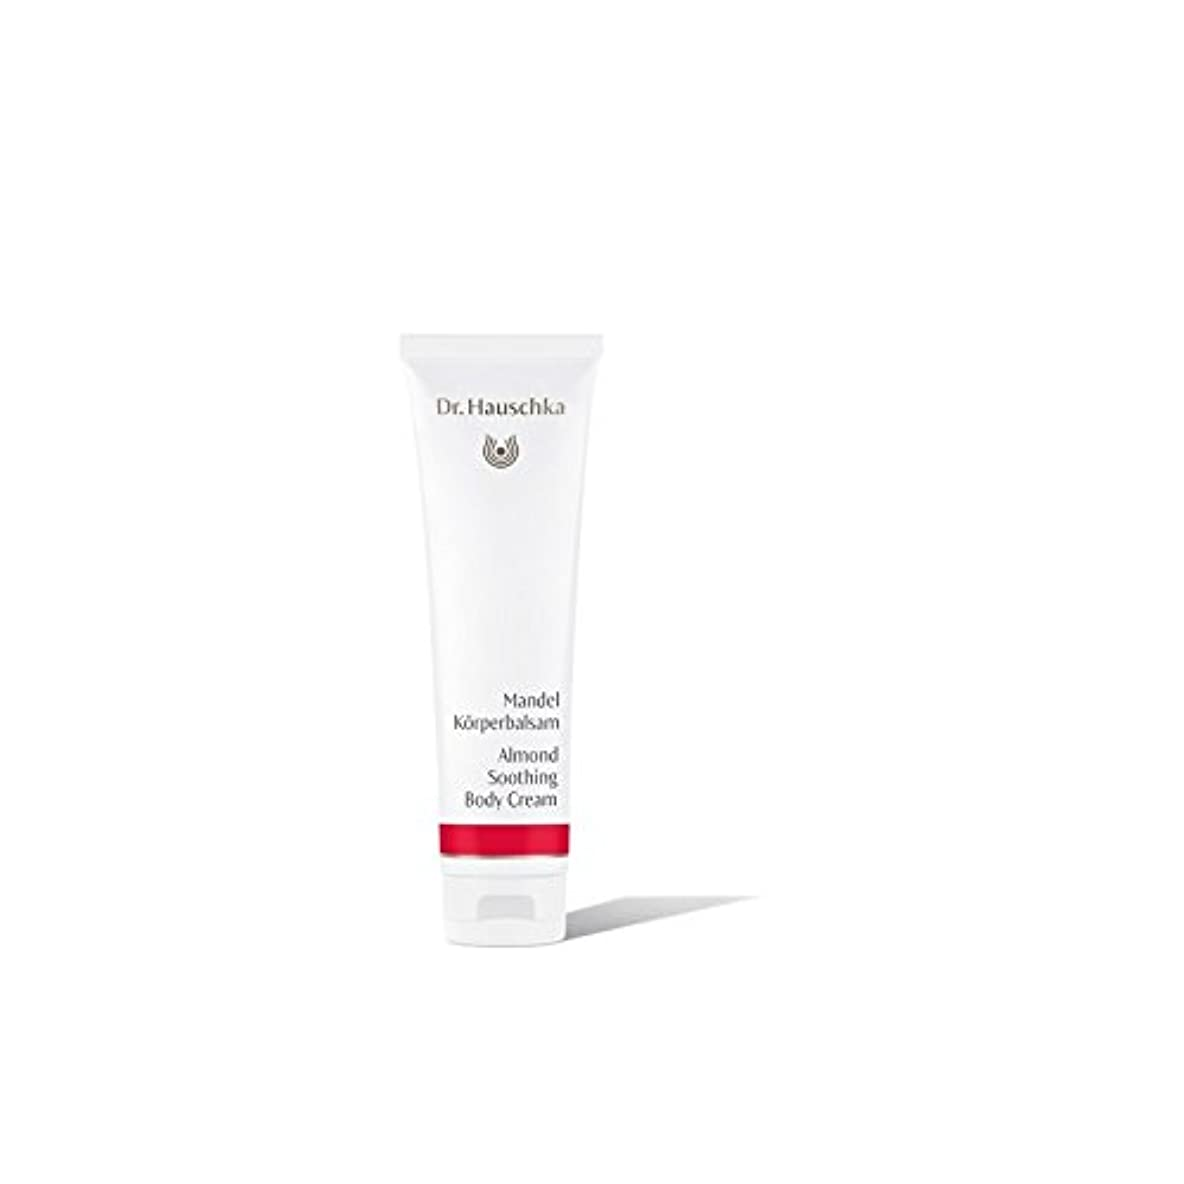 Dr. Hauschka Almond Soothing Body Cream (145ml) (Pack of 6) - ハウシュカアーモンドなだめるボディクリーム(145ミリリットル) x6 [並行輸入品]